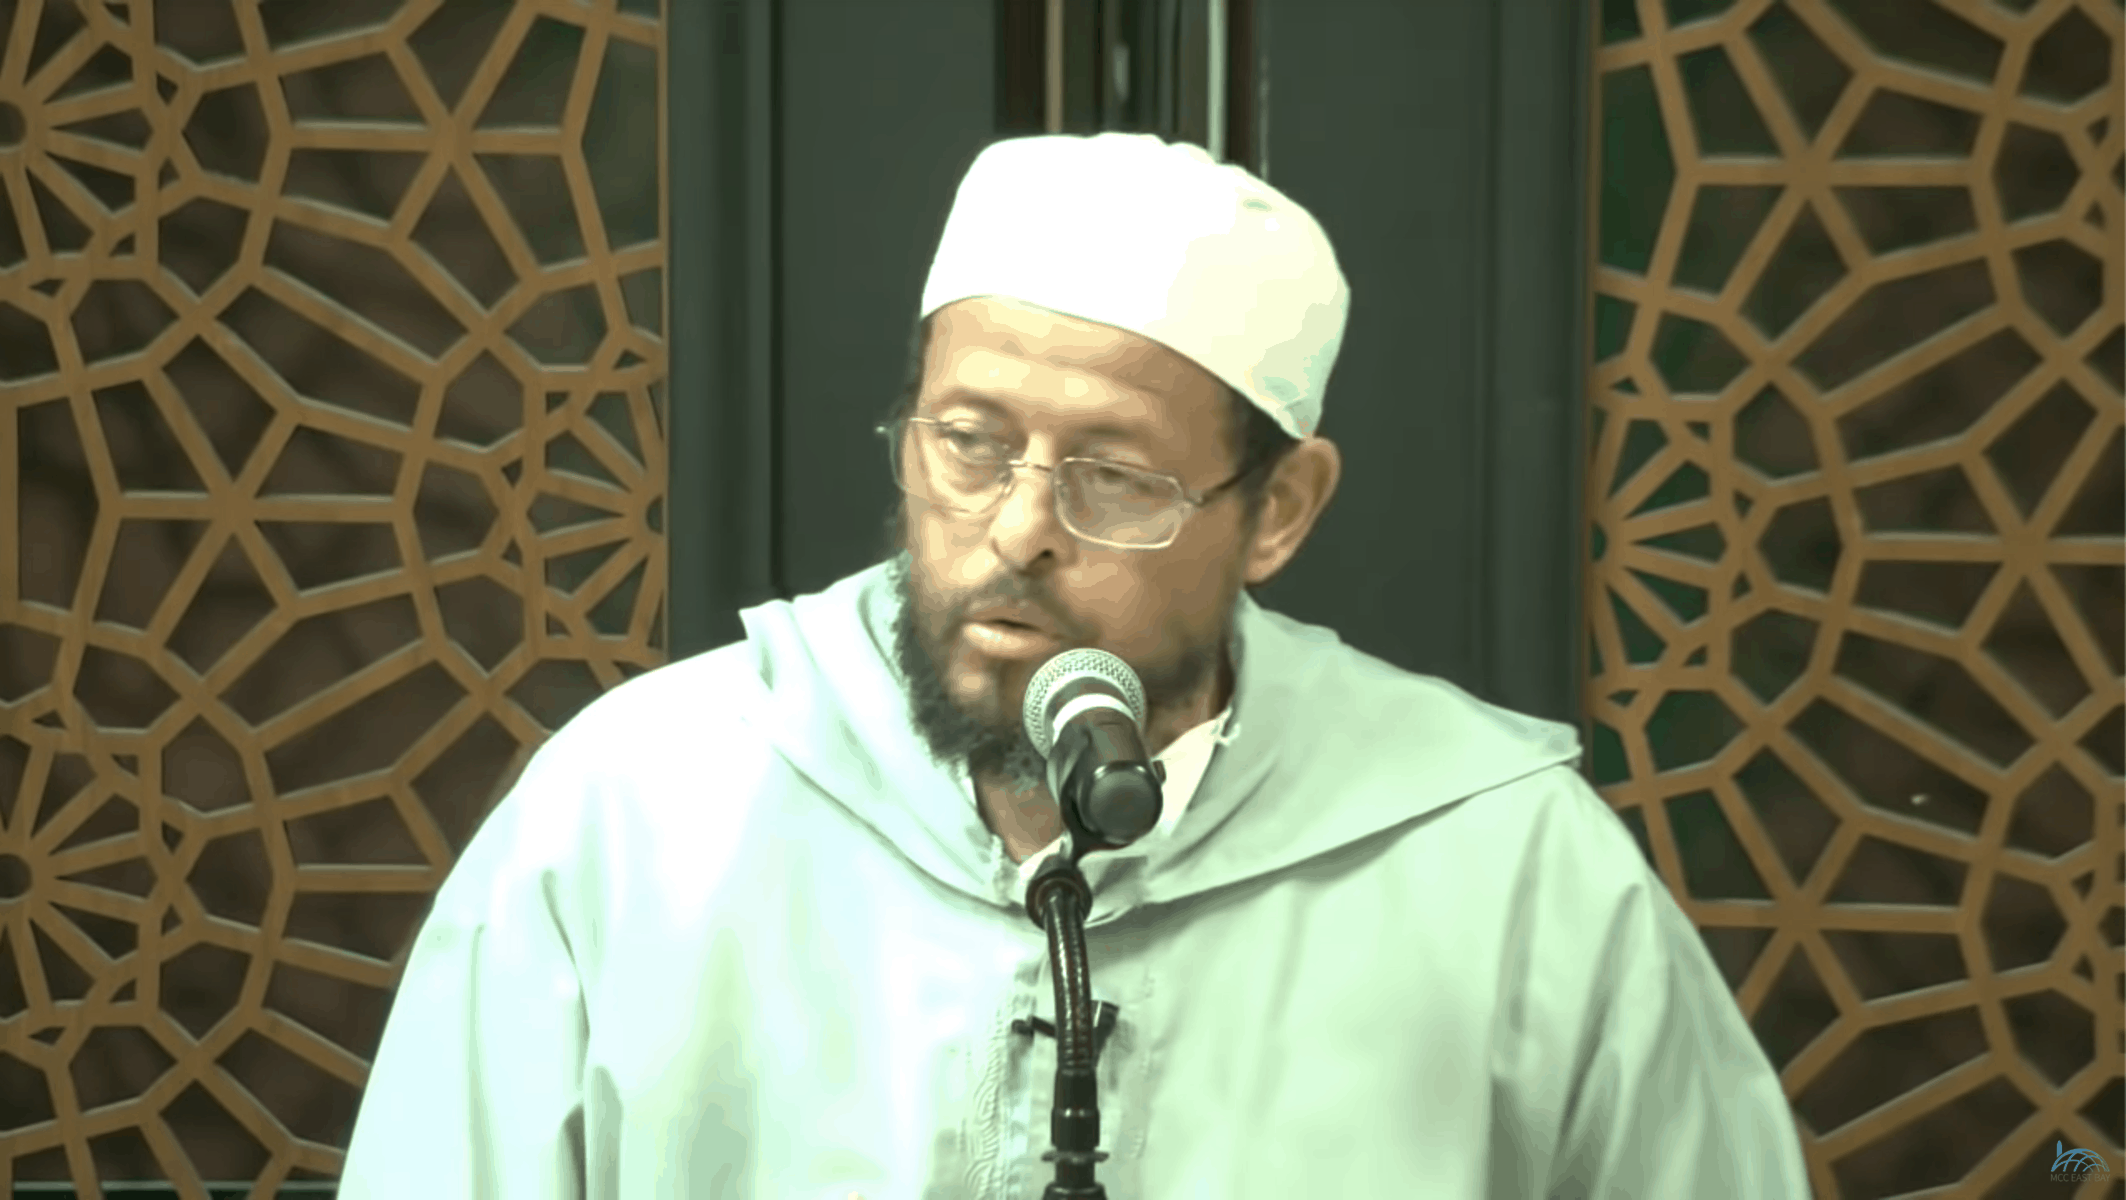 Zaid Shakir – The Prophet's Heavenly Ascension (Al Isra Wal Miraj)